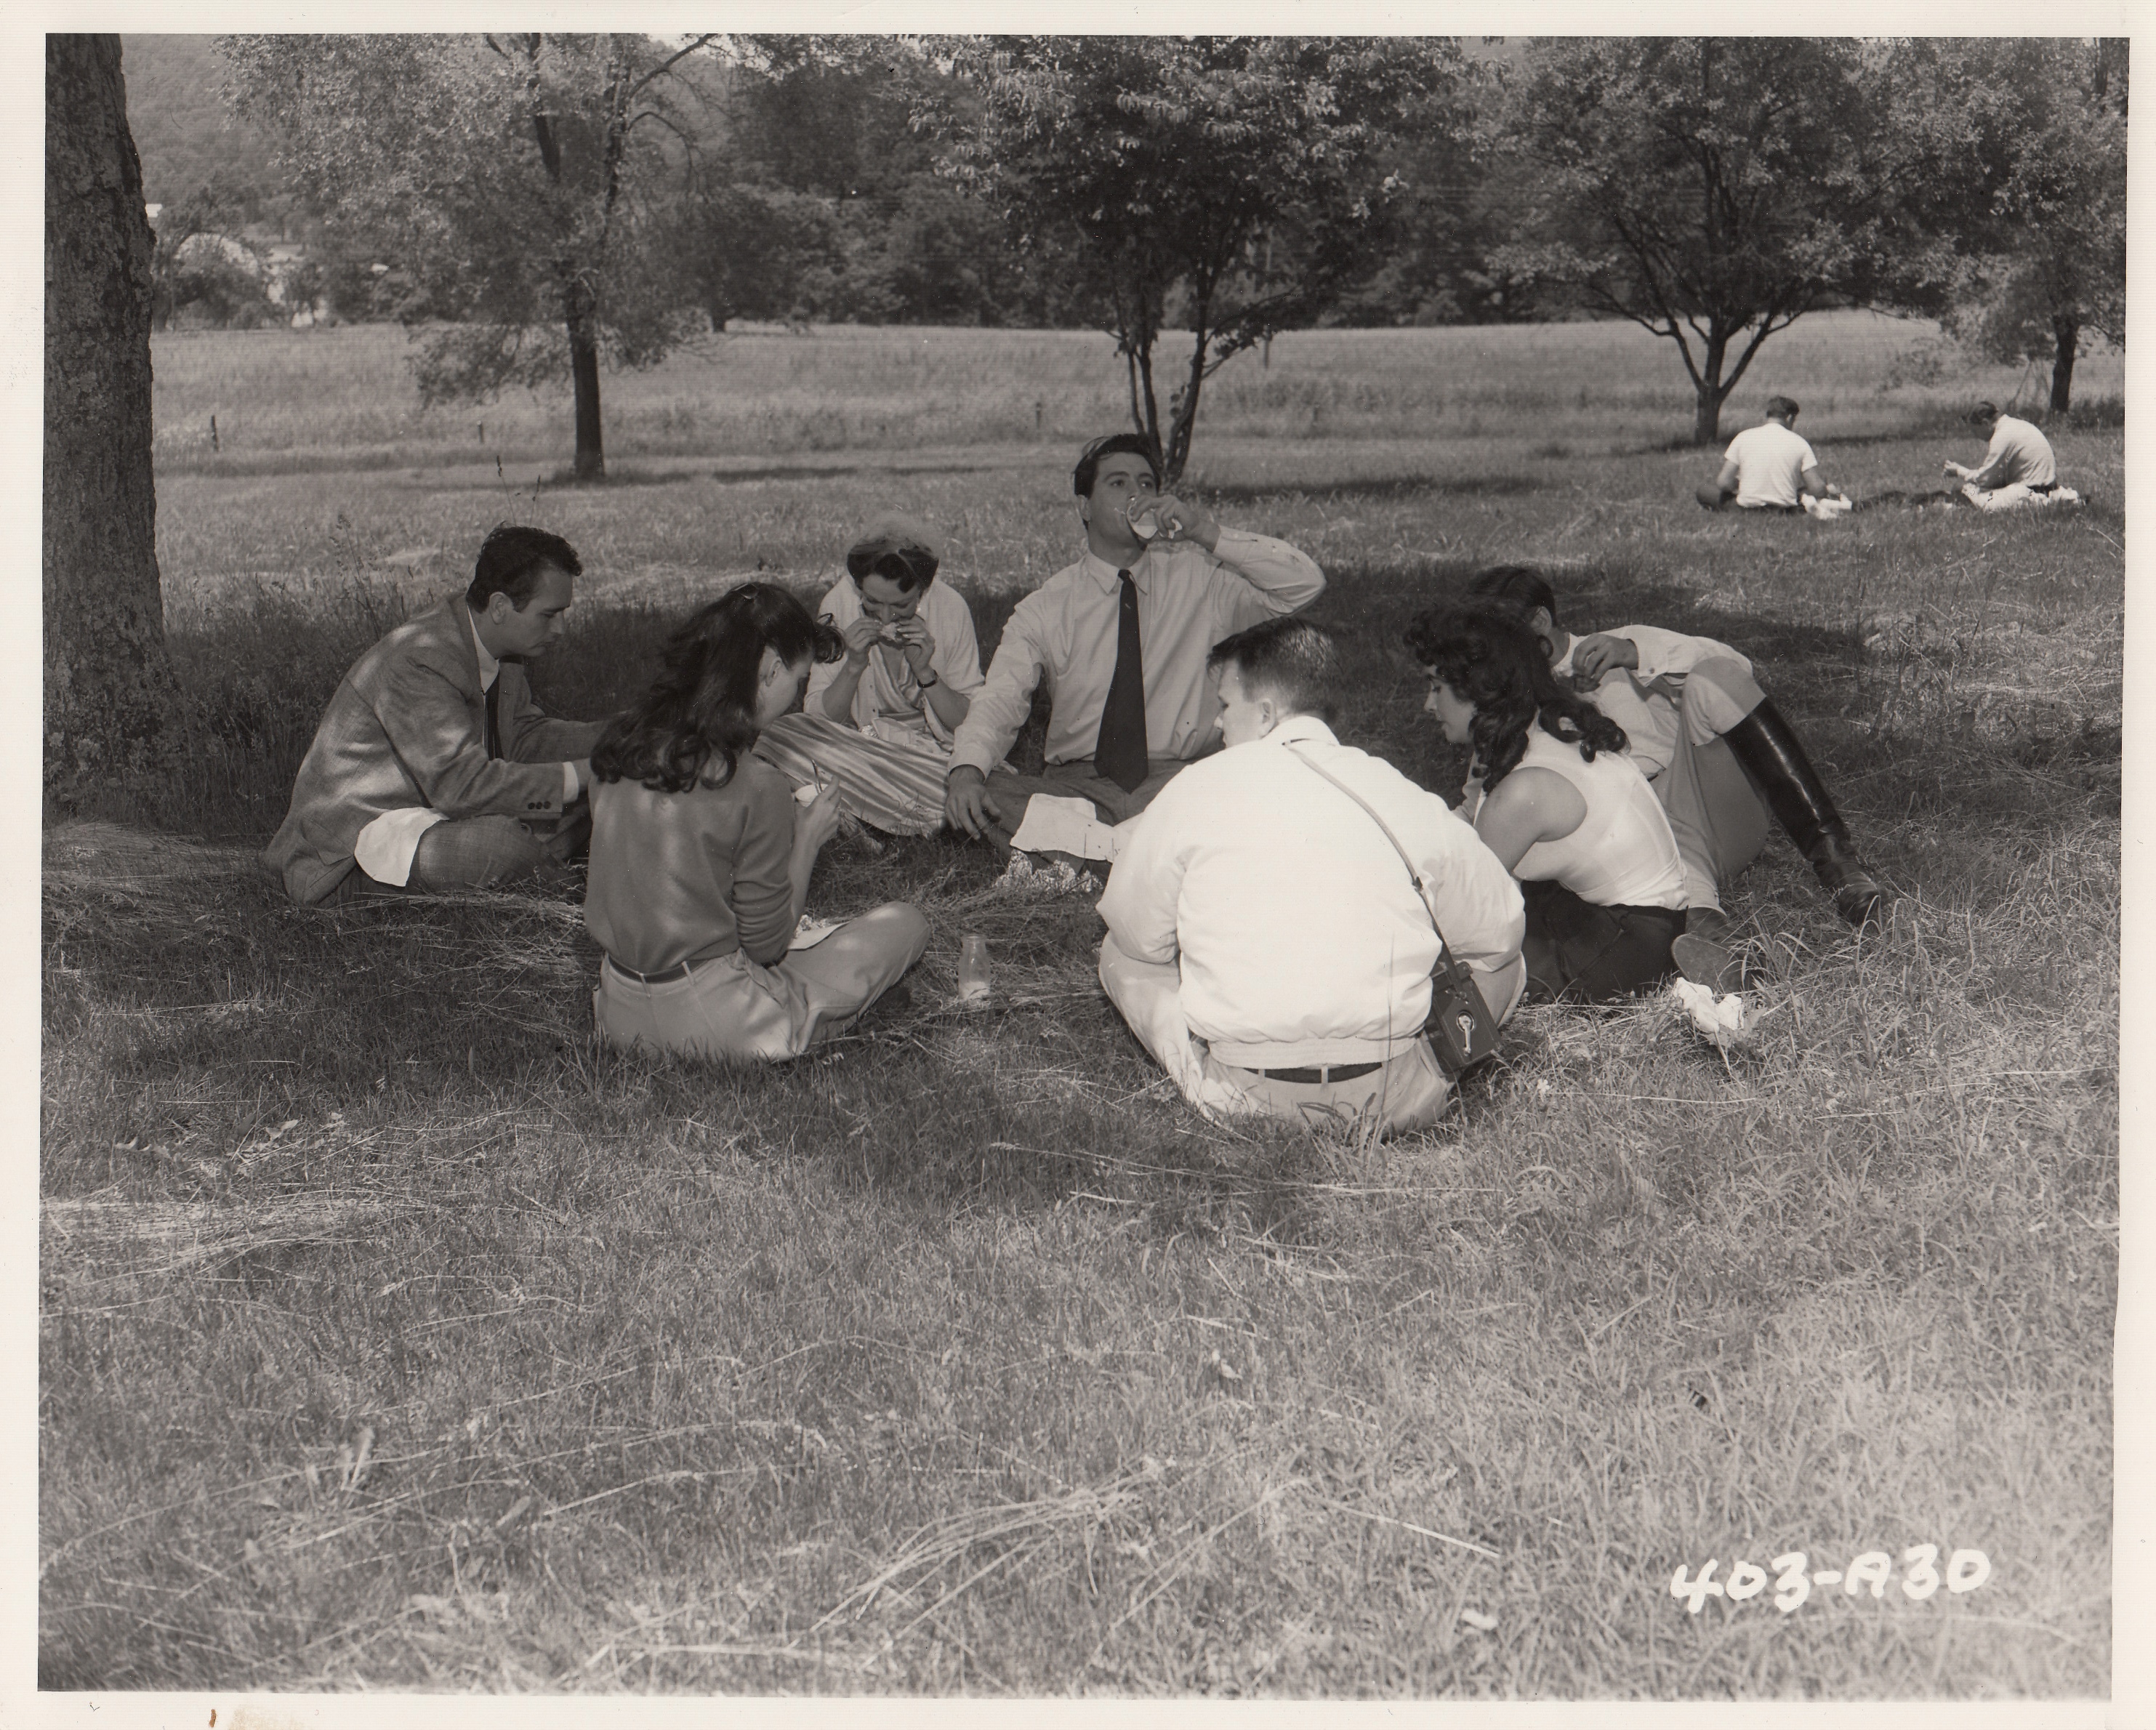 "On Location--Charlottesville, Virginia, shooting George Stevens' production Giant.  (L. to R.) Bob Hinkle, stand-in for Rock Hudson, and also stunt rider, Judith Evelyn, Rock Hudson, Elizabeth Taylor, George Stevens, and Carolyn Craig. Taking time out for picnic style lunch on lawn of ""Belmont"" plantation during early scene of Giant, ca. 1956. Photographer unknown. (Prints File. Image by Petrina Jackson)"